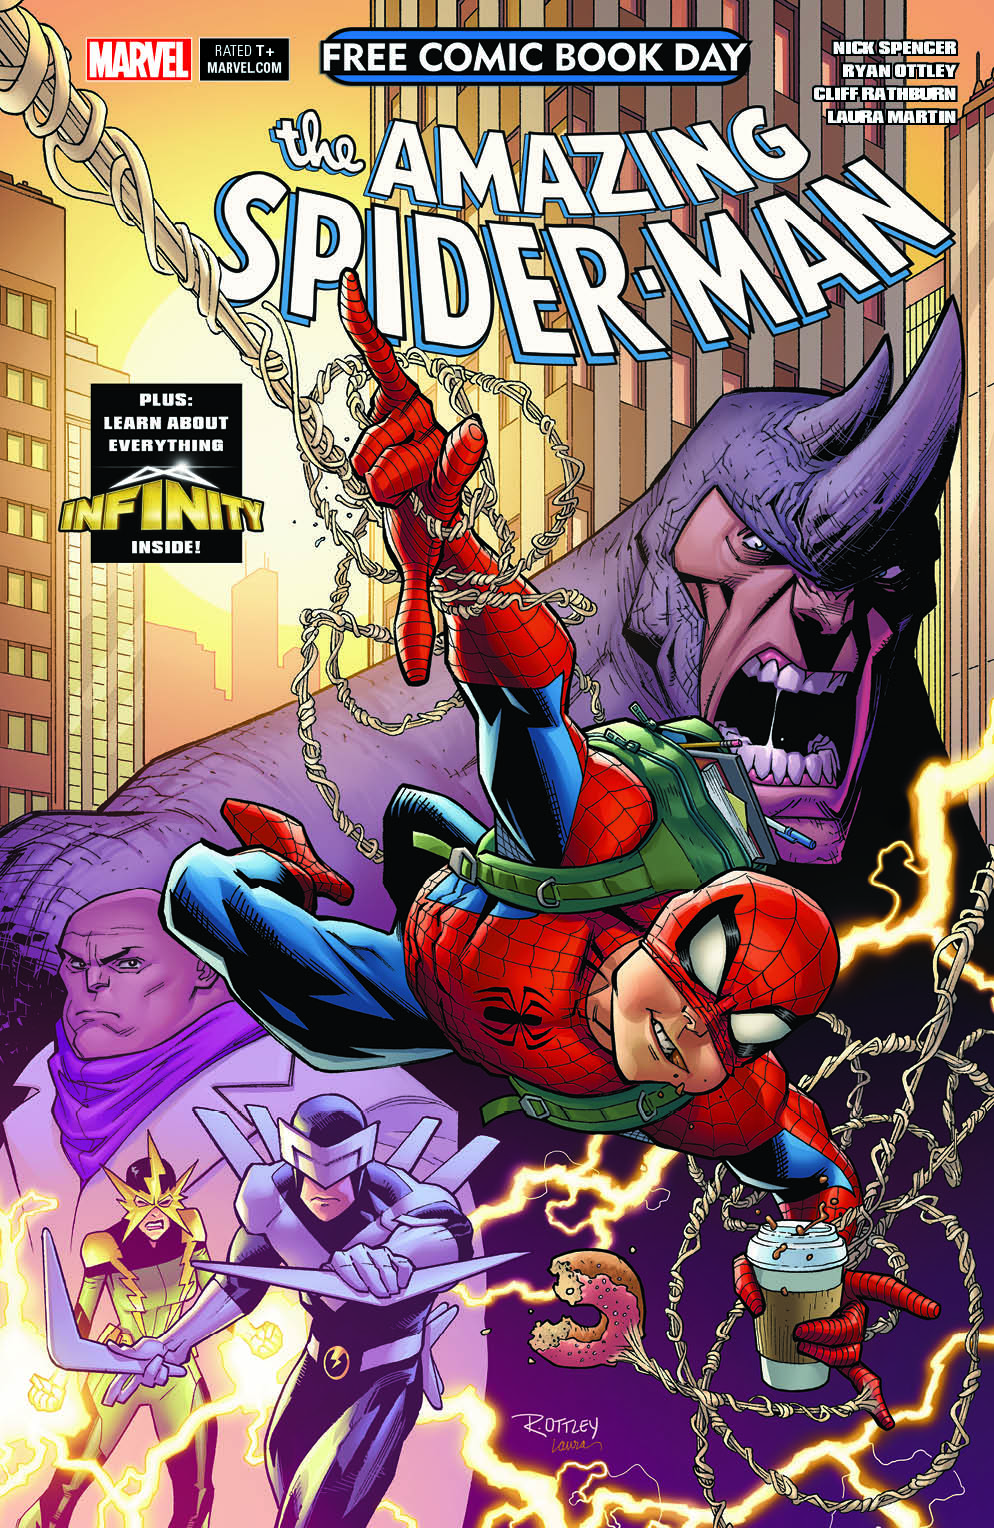 Free_Comic_Book_Day_Vol_2018_Amazing_Spider-Man-2